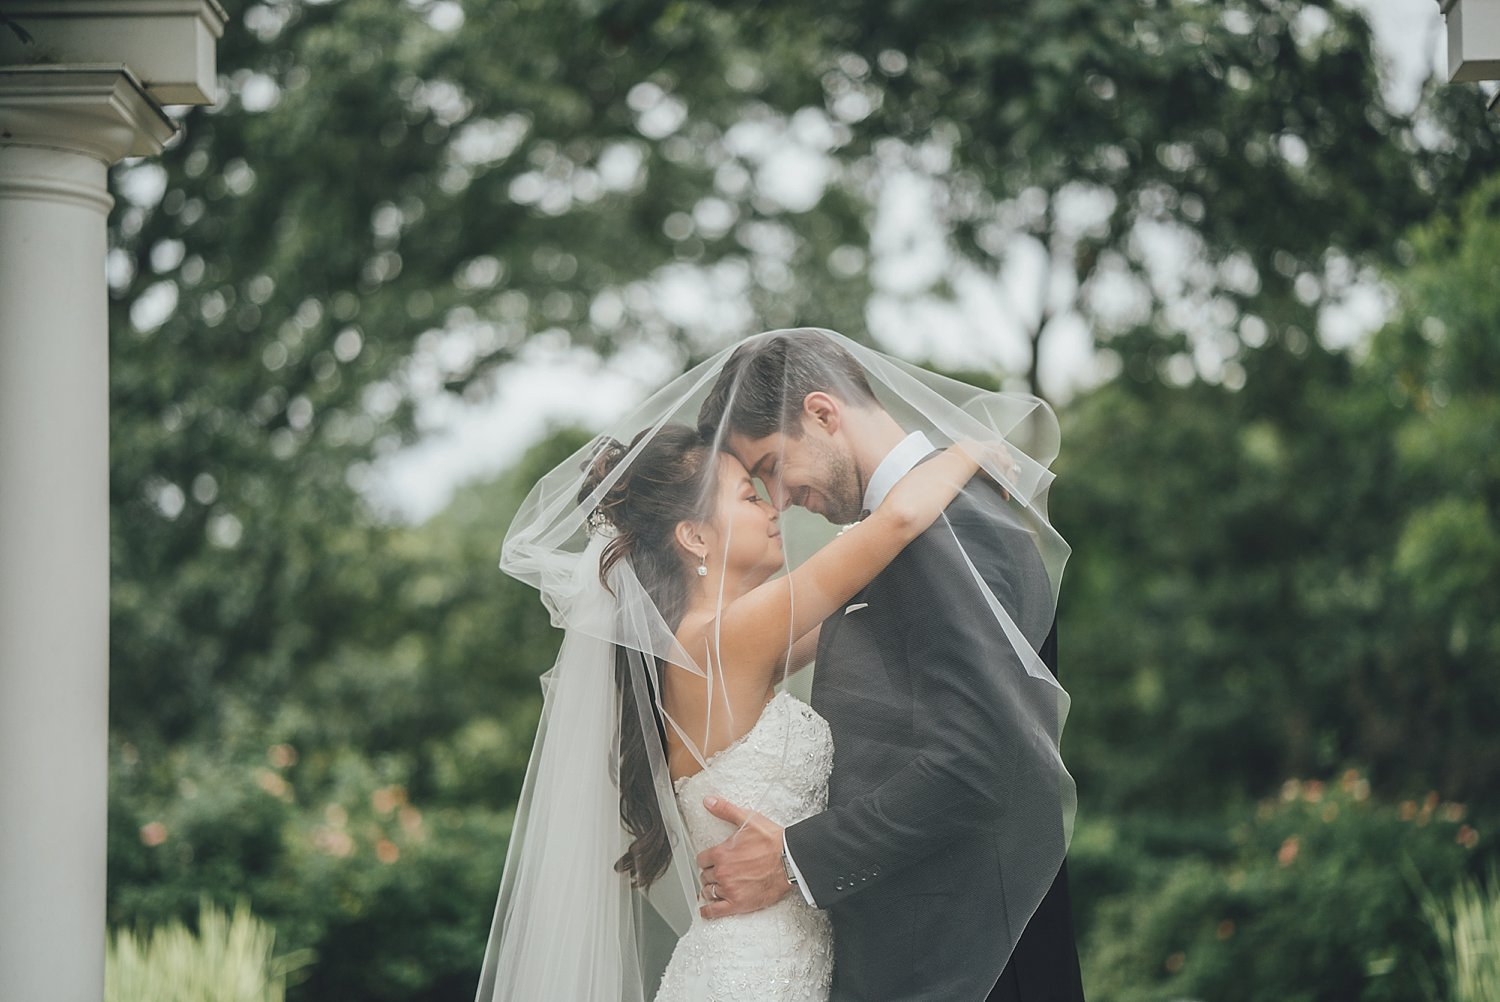 nyc-wedding-photography-nj-tri-state-cinematography-intothestory-by-moo-jae_0240.jpg